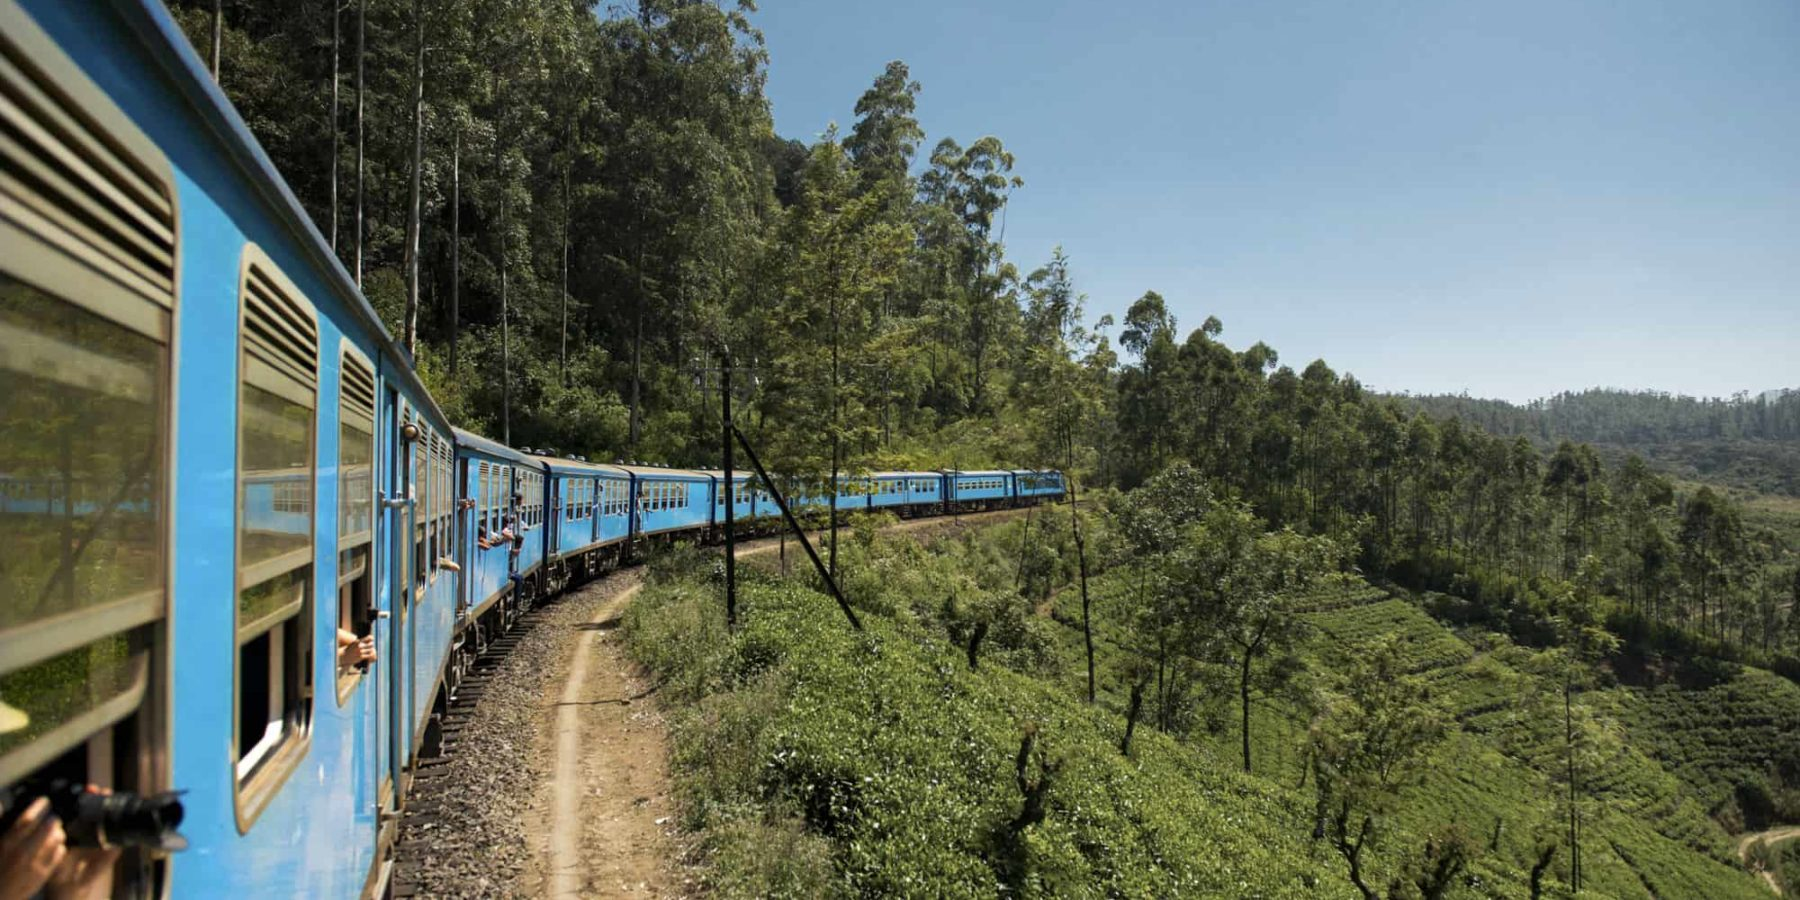 Travelling by train in Sri Lanka